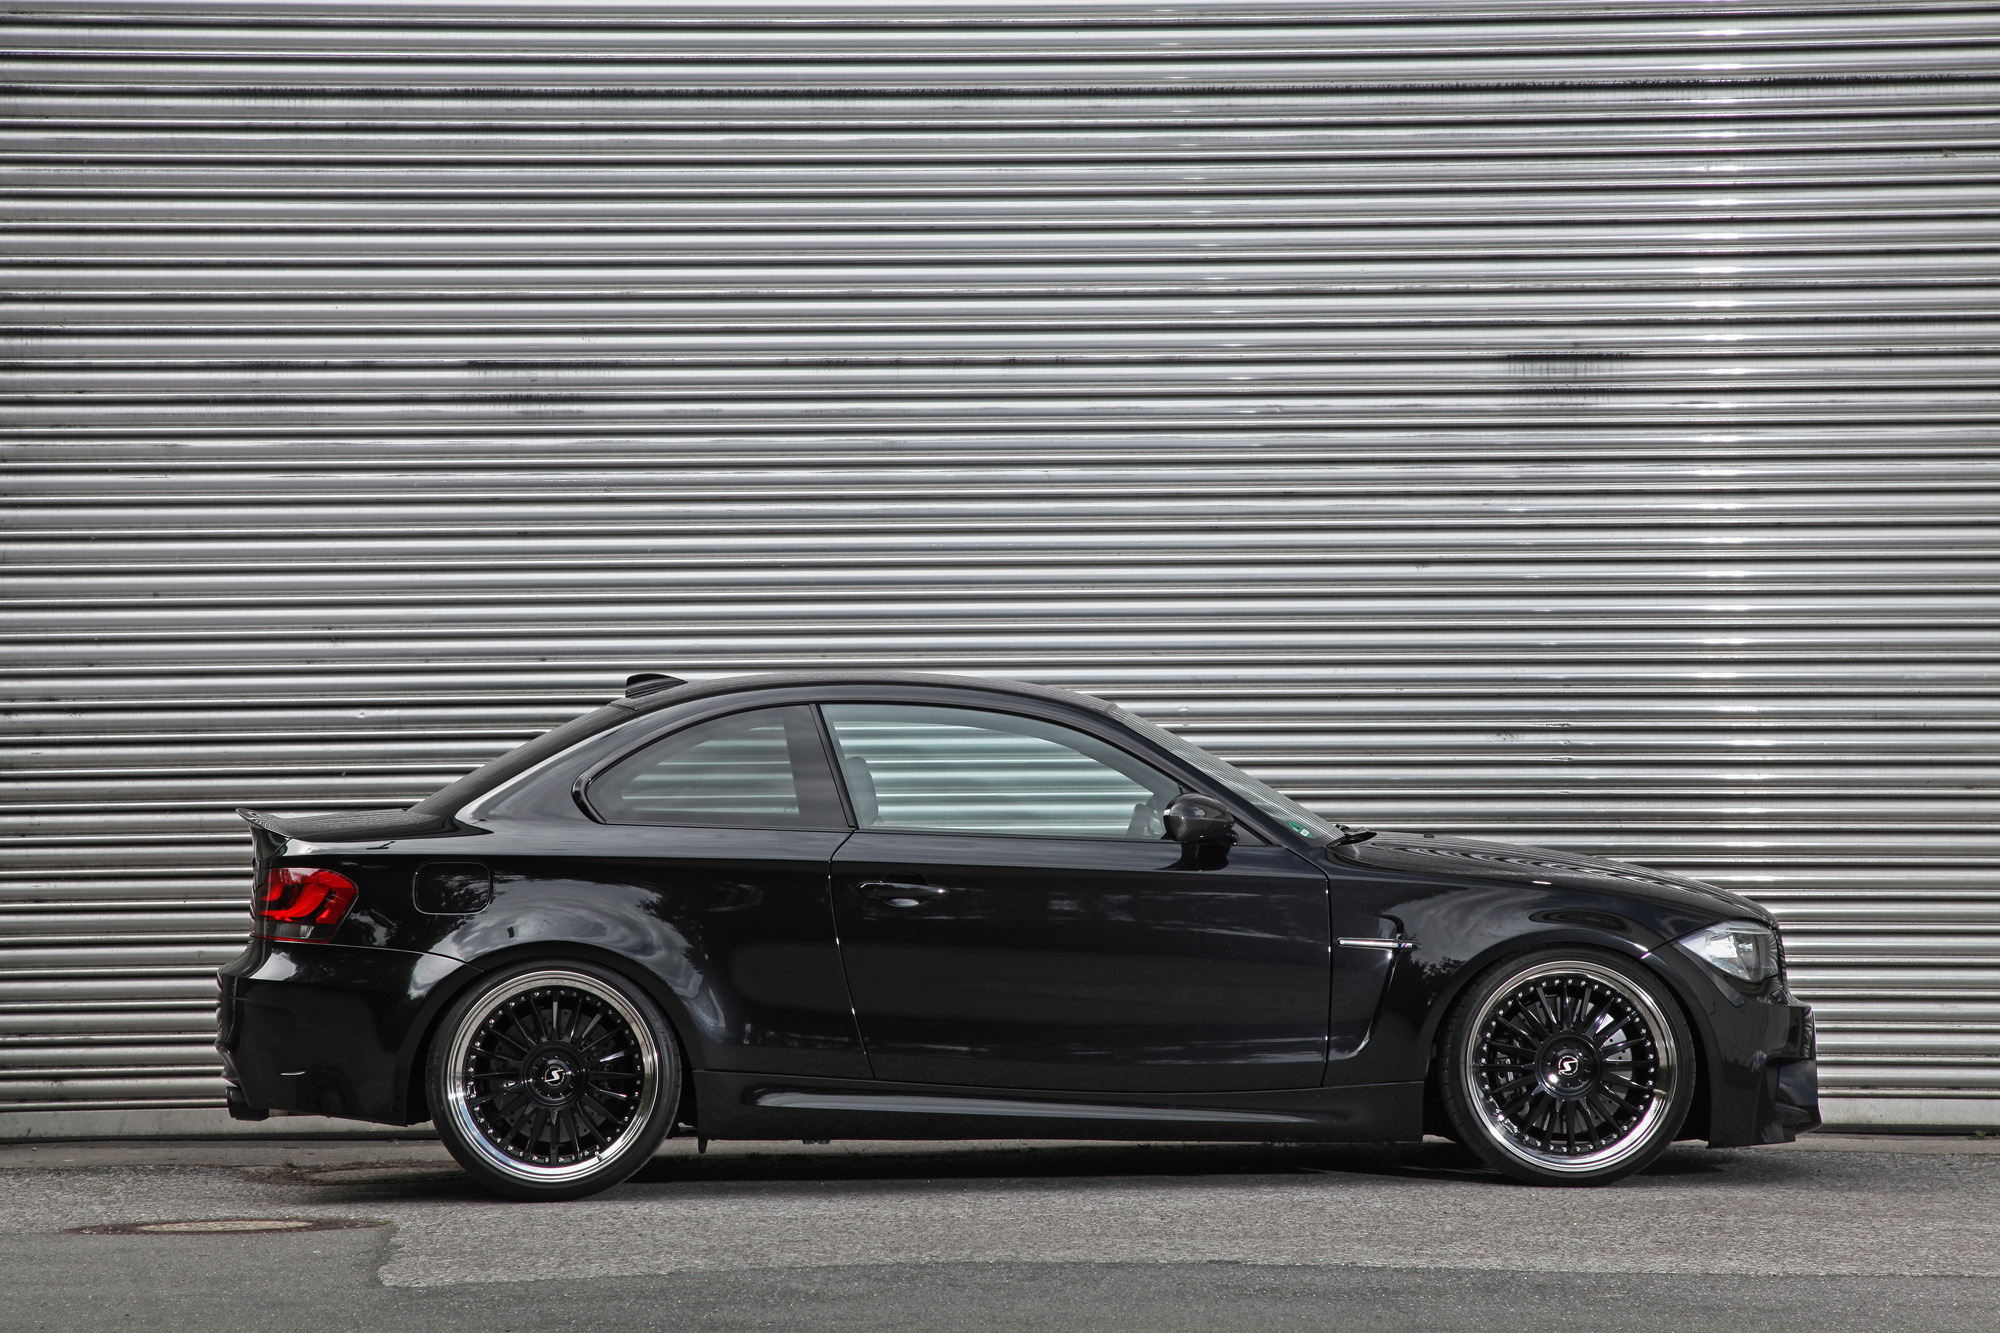 bmw-1er-m-coupé-e82-ok-chiptuning-02